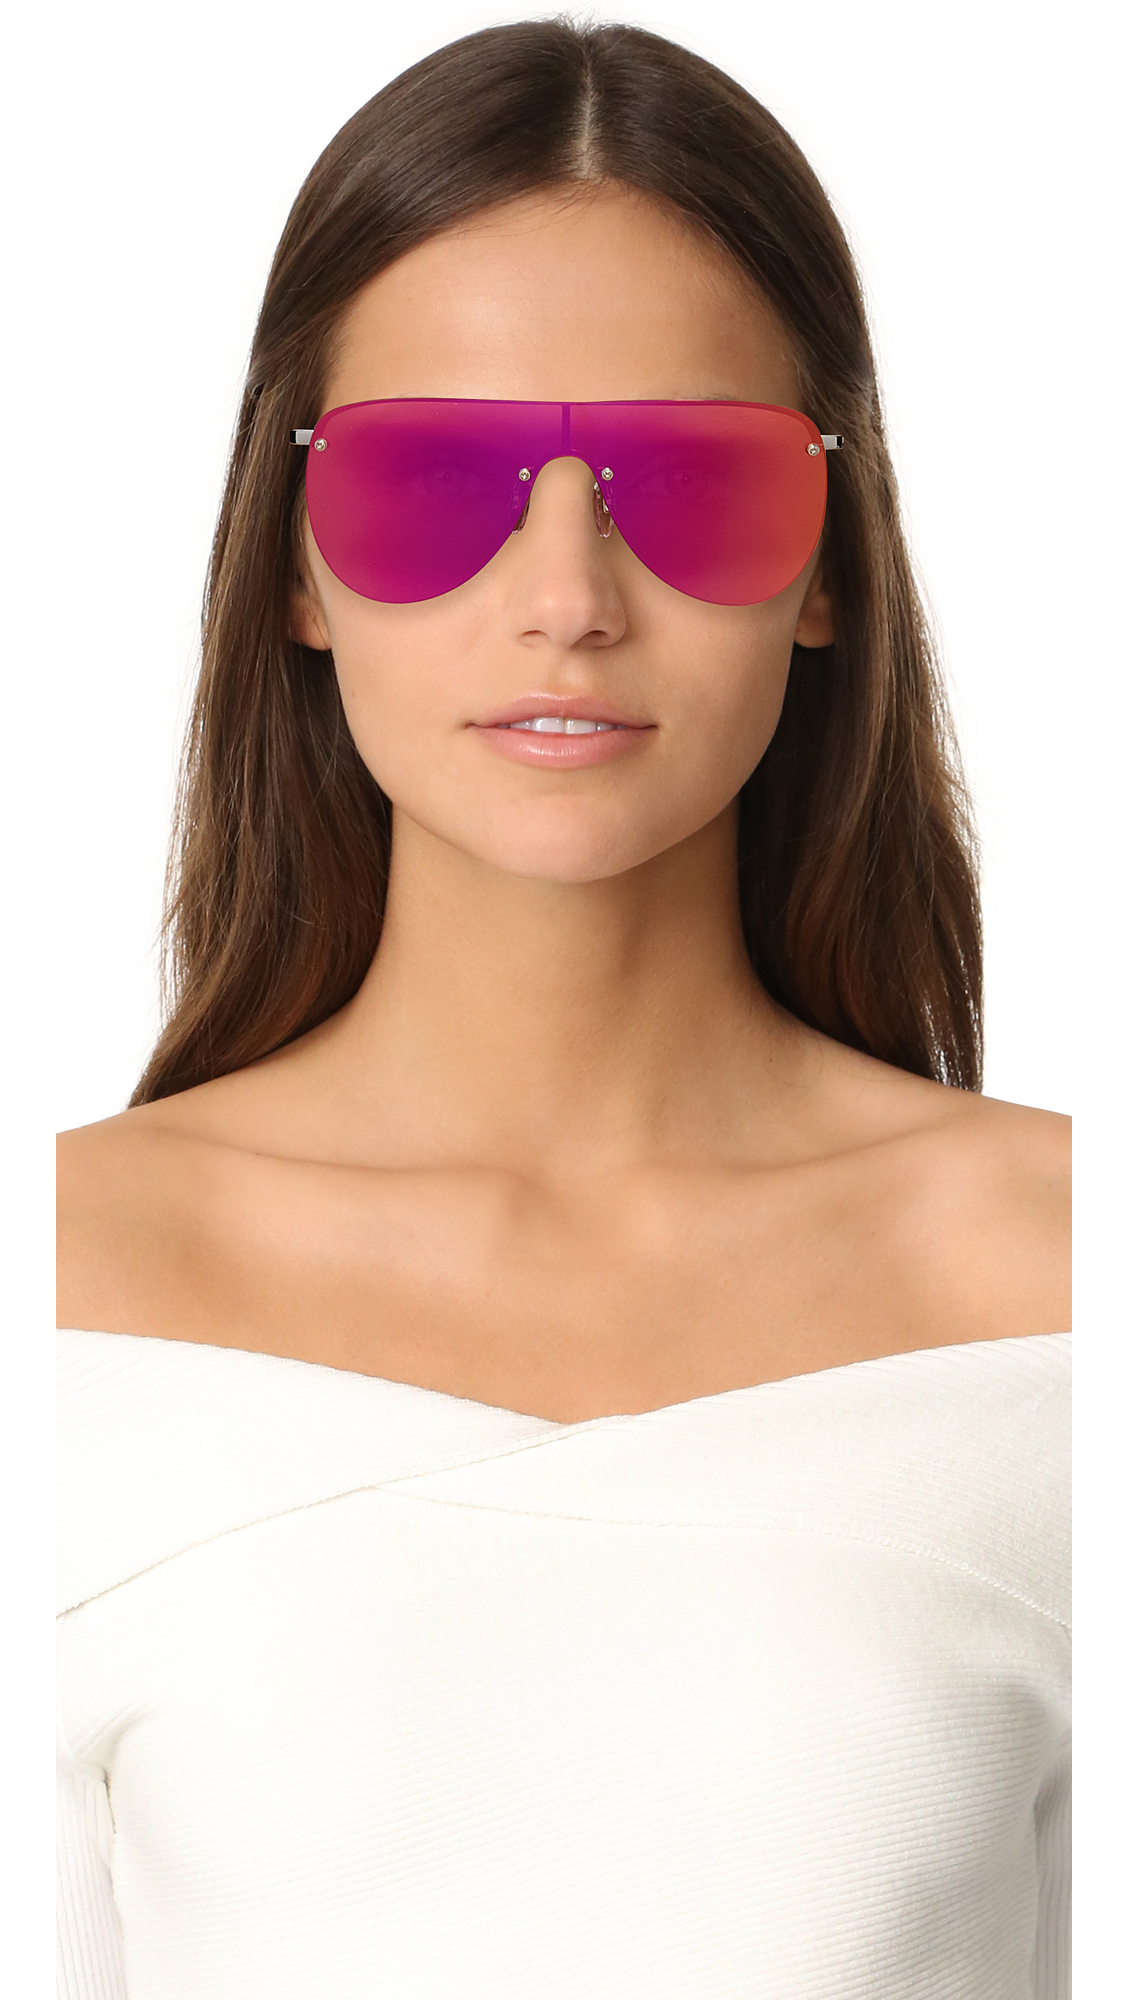 The King mirrored sunglasses Le Specs 4PVgm